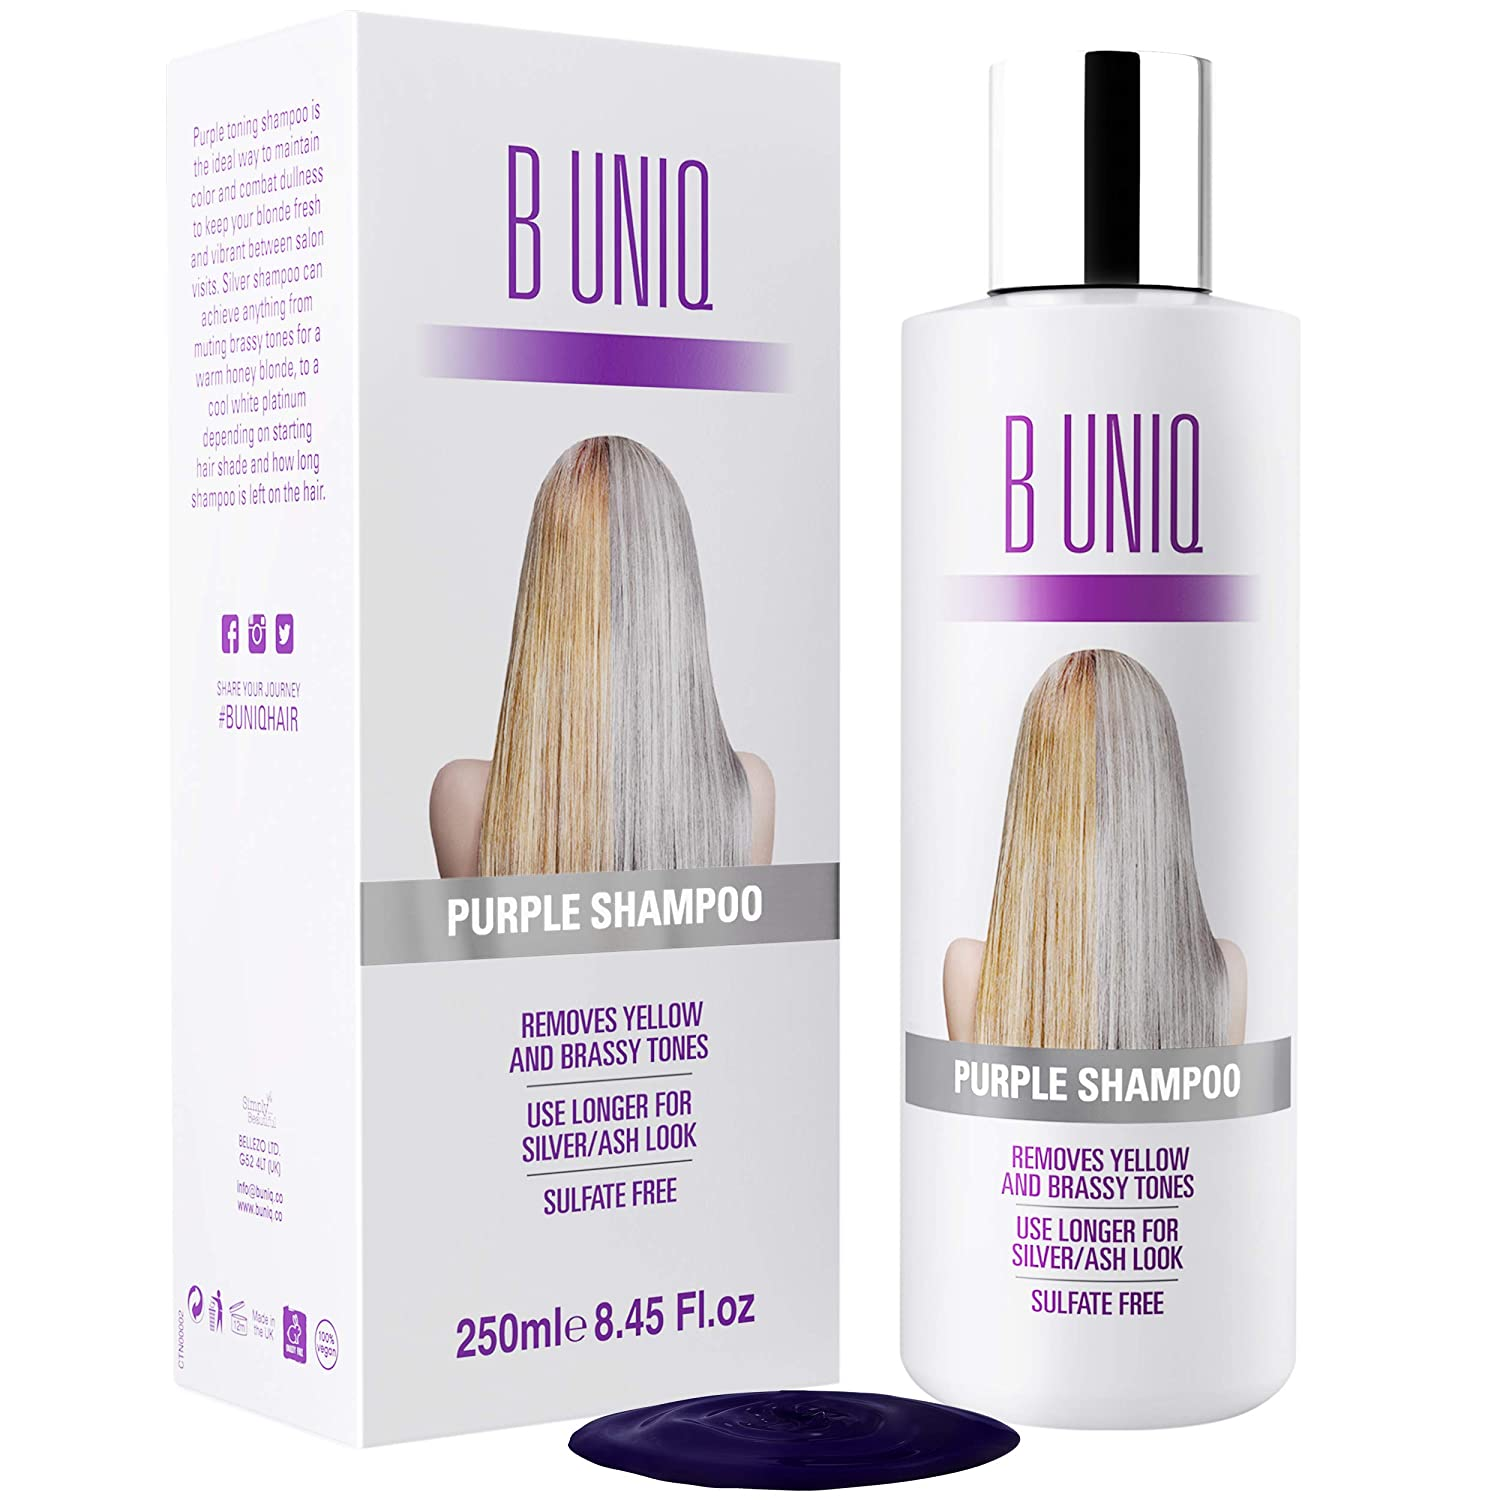 Purple Shampoo for Blonde Hair: Blonde Shampoo Eliminates Brassy Yellow Tones